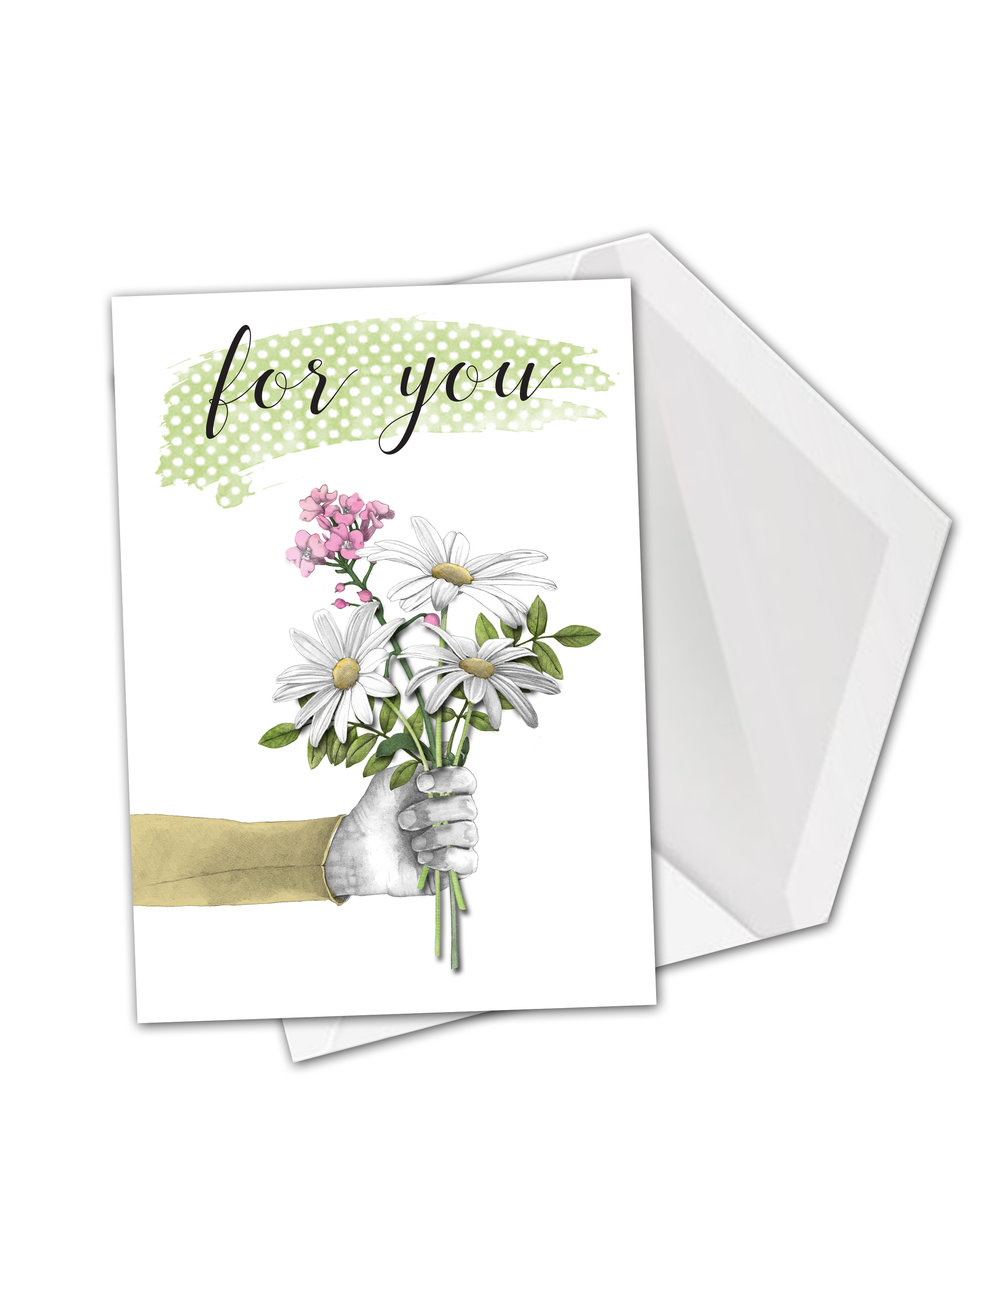 CA For you hand with flowers card.jpg